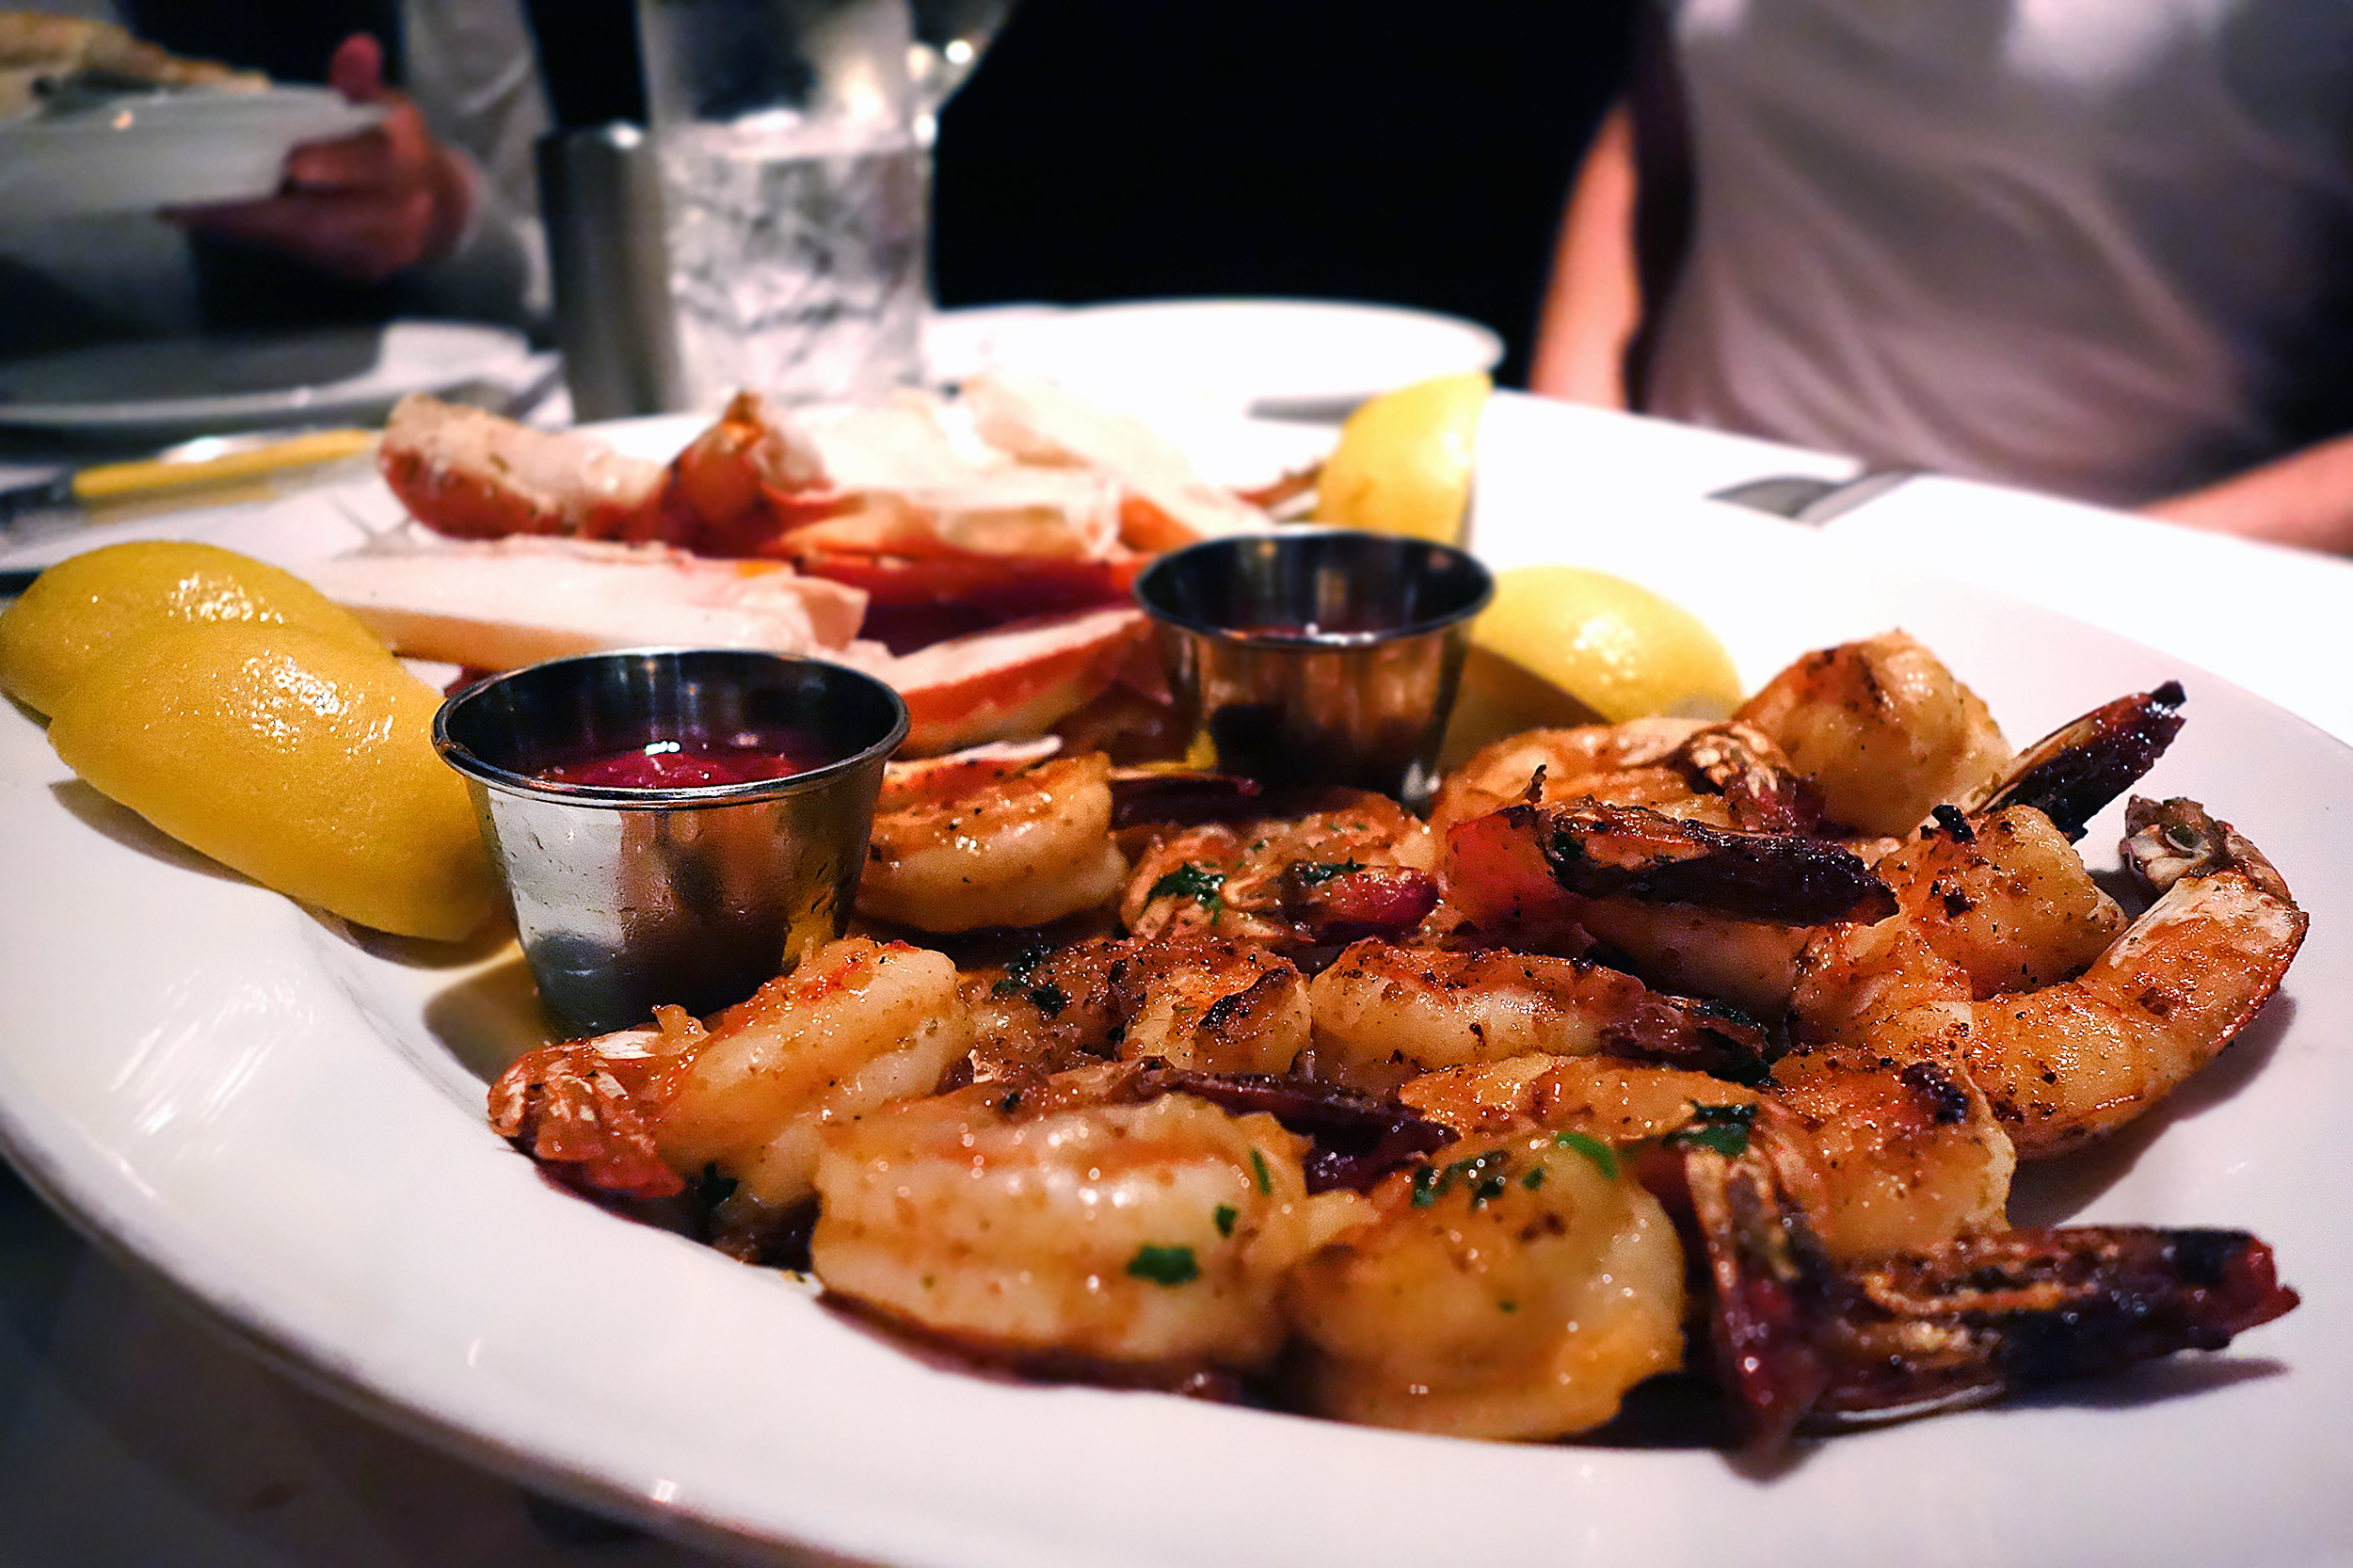 Shrimp and King Crab platter. (Alaskan Crab $18, Jumbo shrimp cocktail $14)